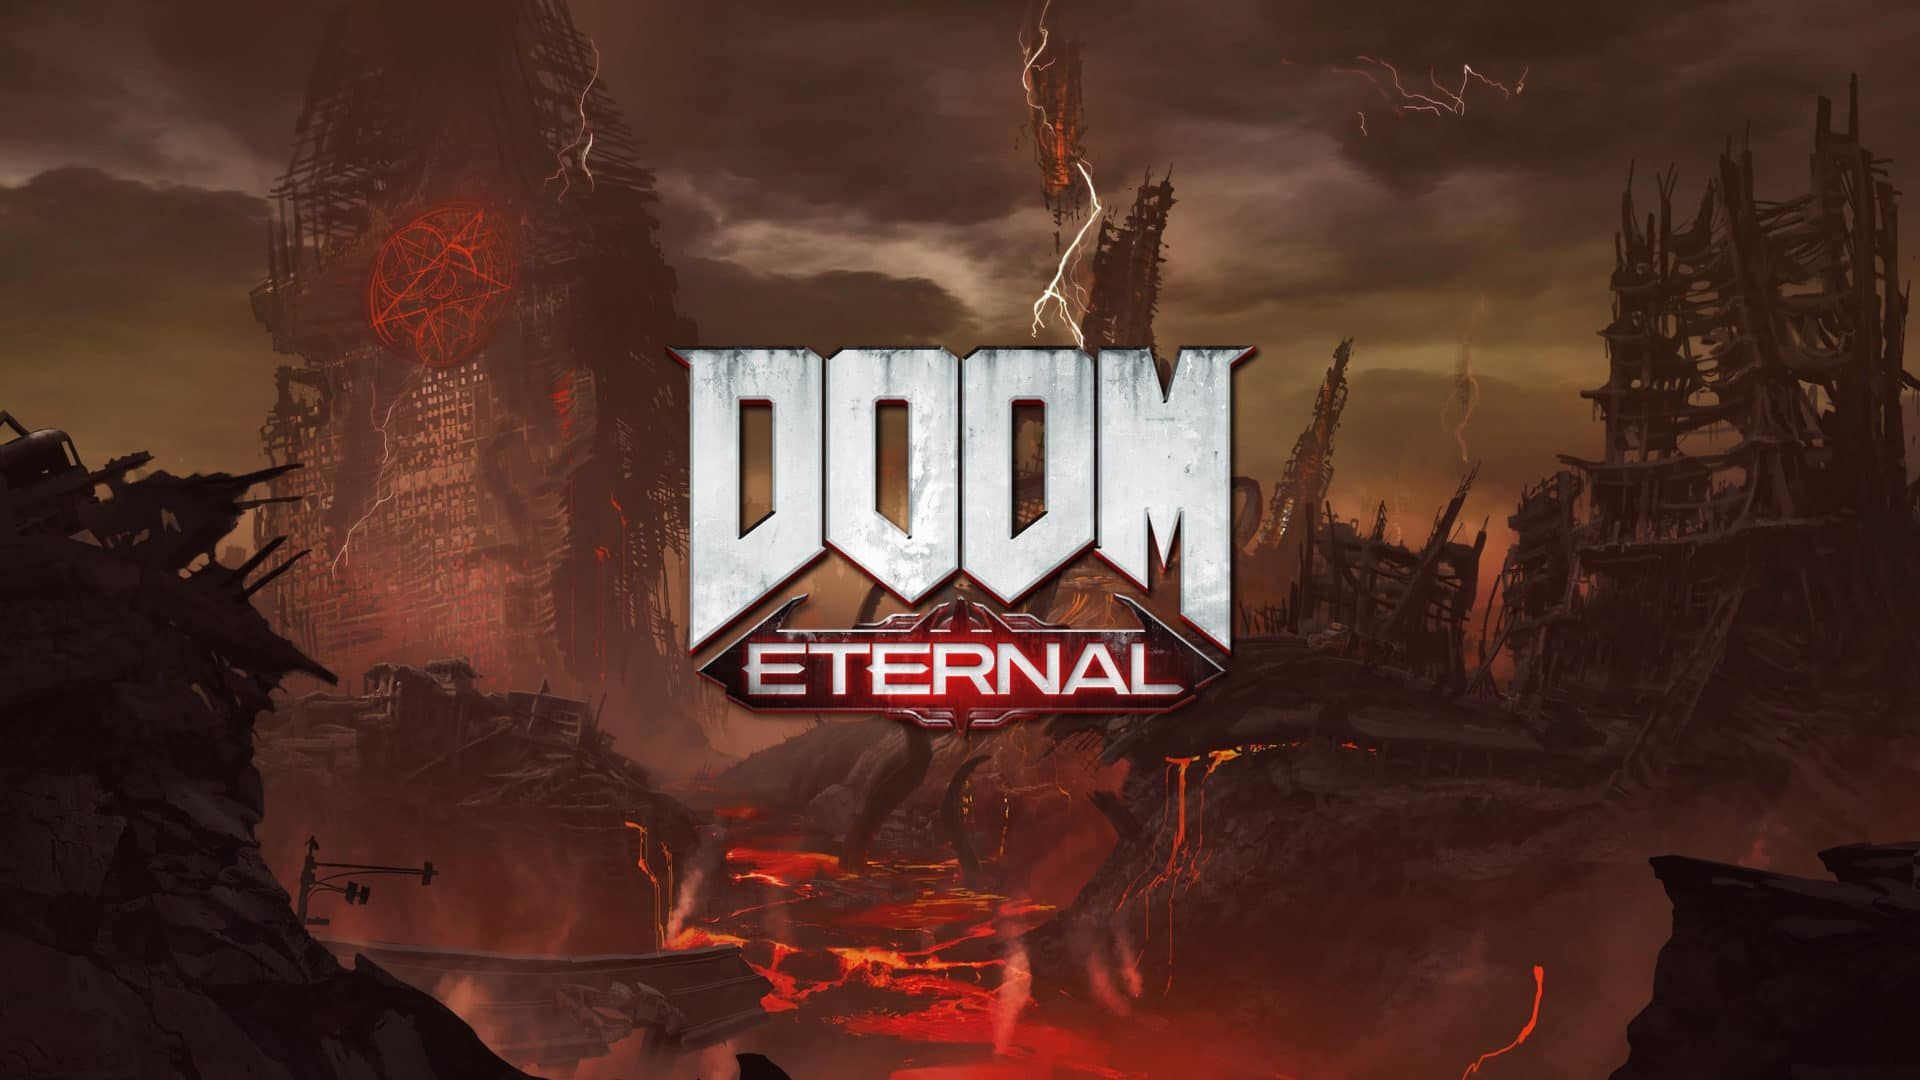 Doom Eternal Pc Requirements Revealed And They Re Quite High In